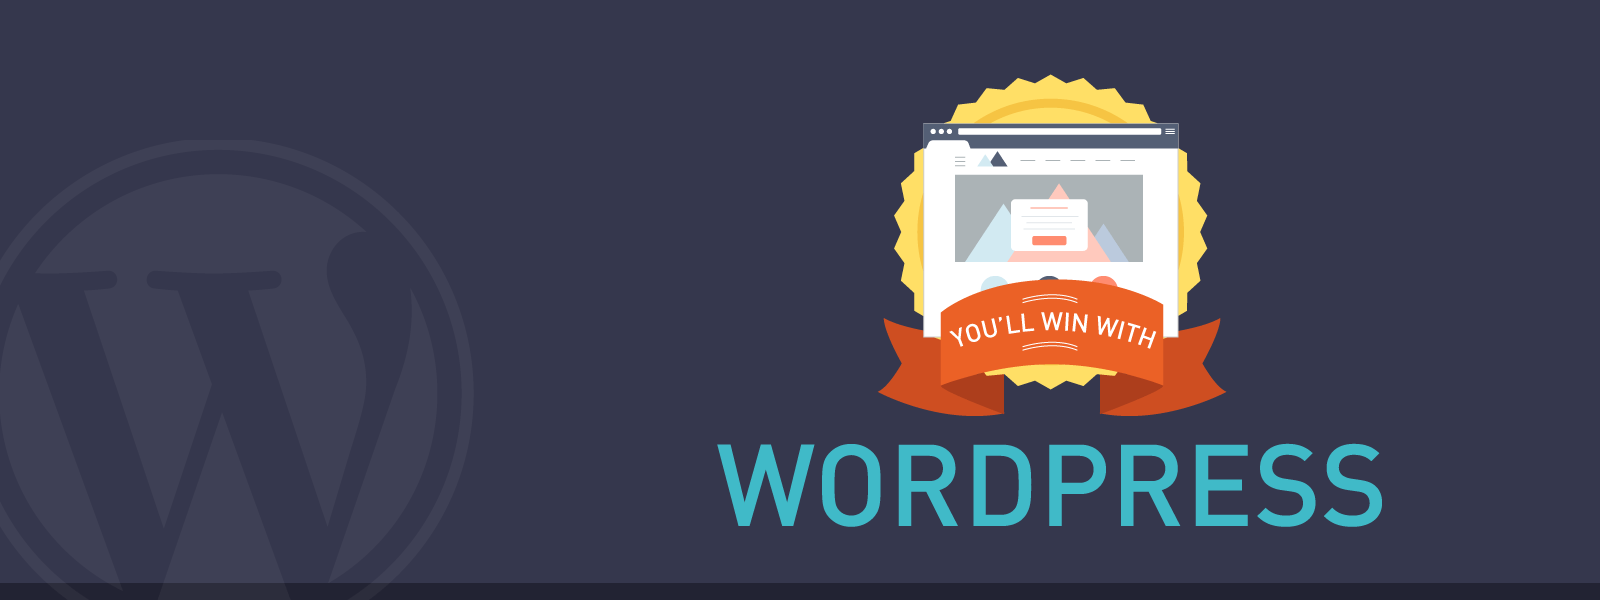 Win With WordPress - Infographic